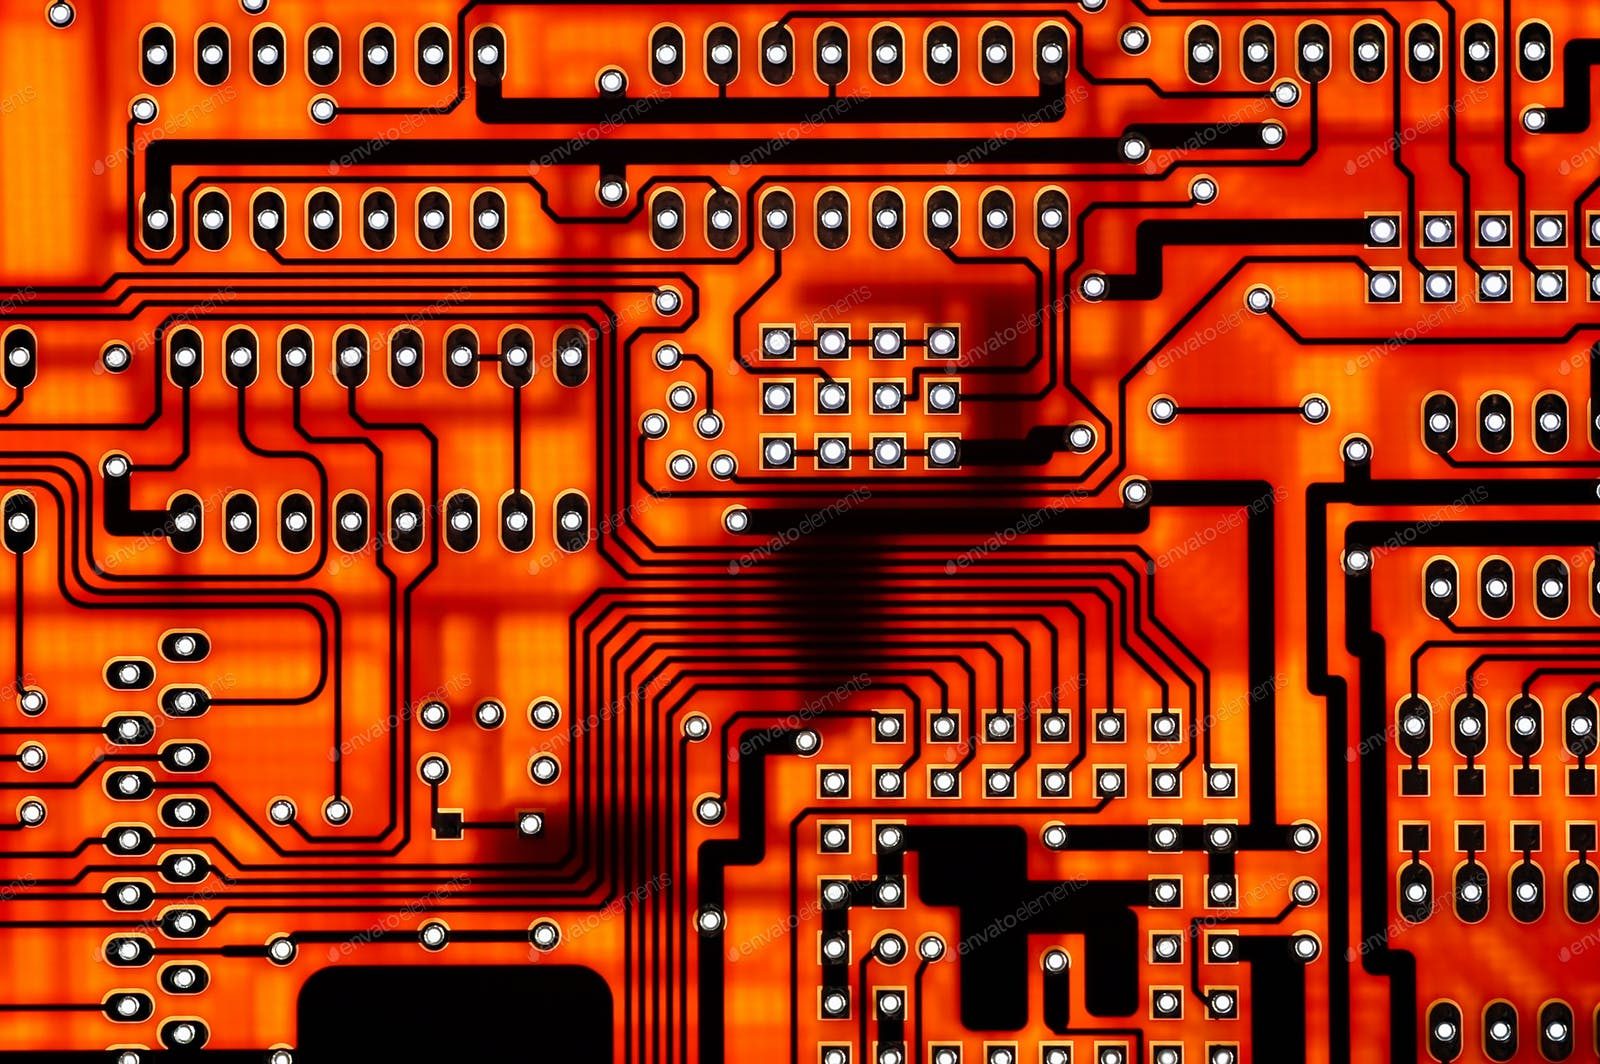 Download 3 Circuit Board Photos Envato Elements Royalty Free Image Of Background From Red Close Up